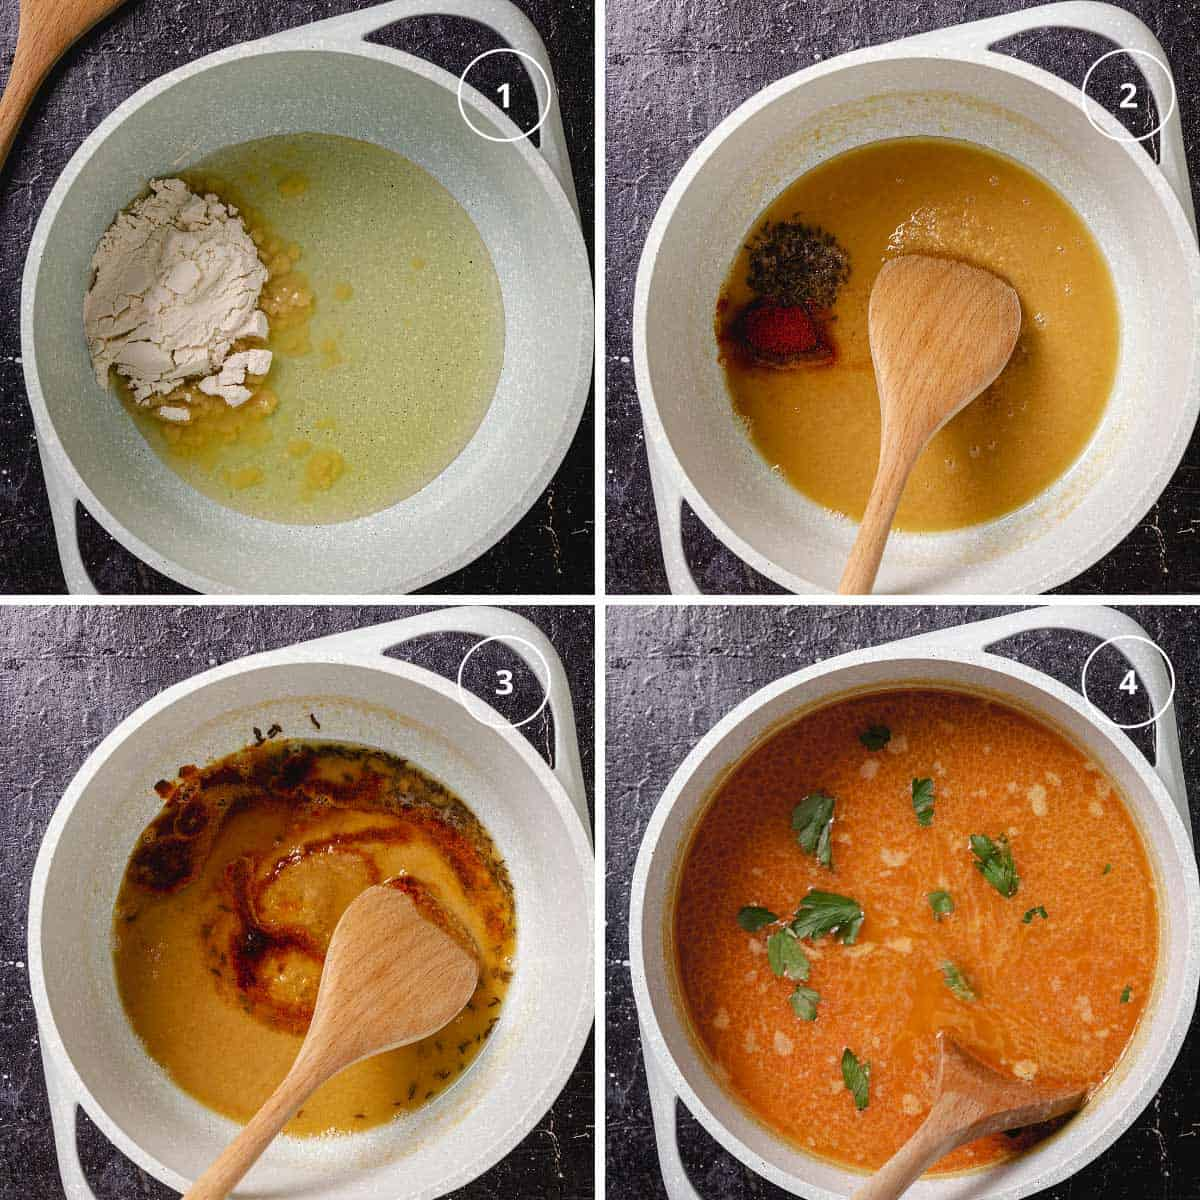 Four-image photo of making the roux in a pot and adding broth and spices to make the ajnpren soup.